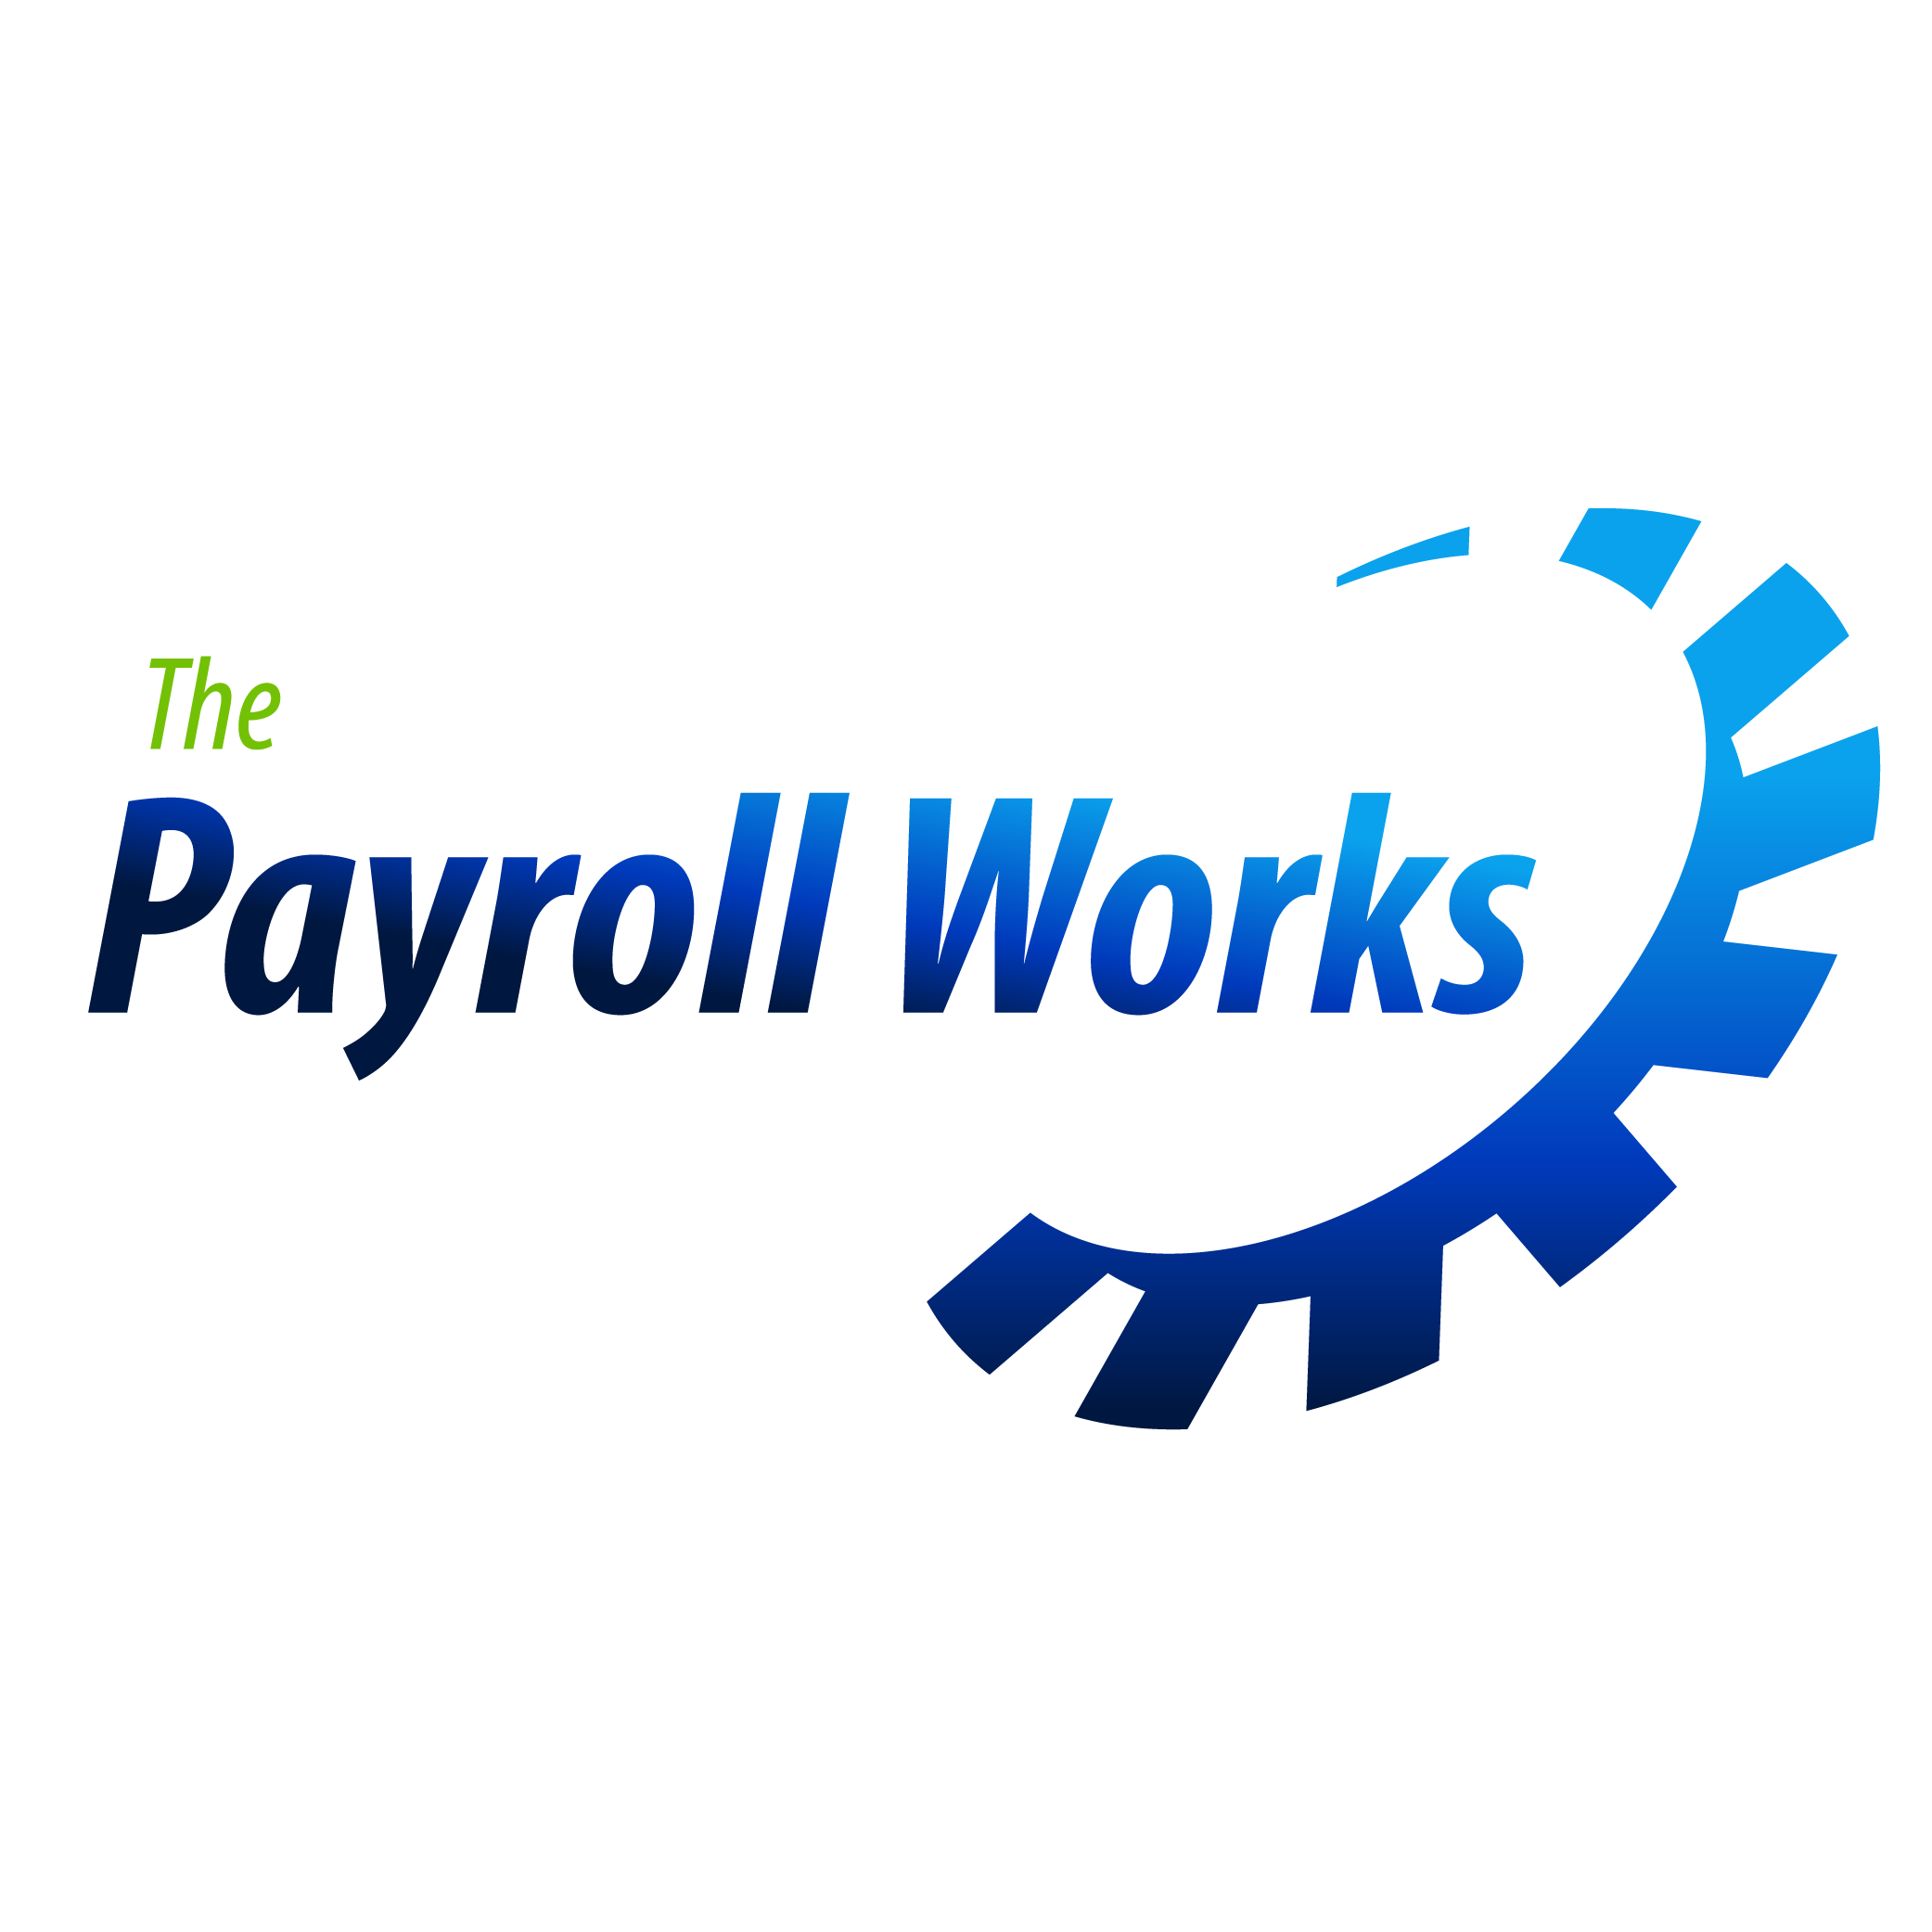 Logo Design by Private User - Entry No. 14 in the Logo Design Contest Captivating Logo Design for The Payroll Works.